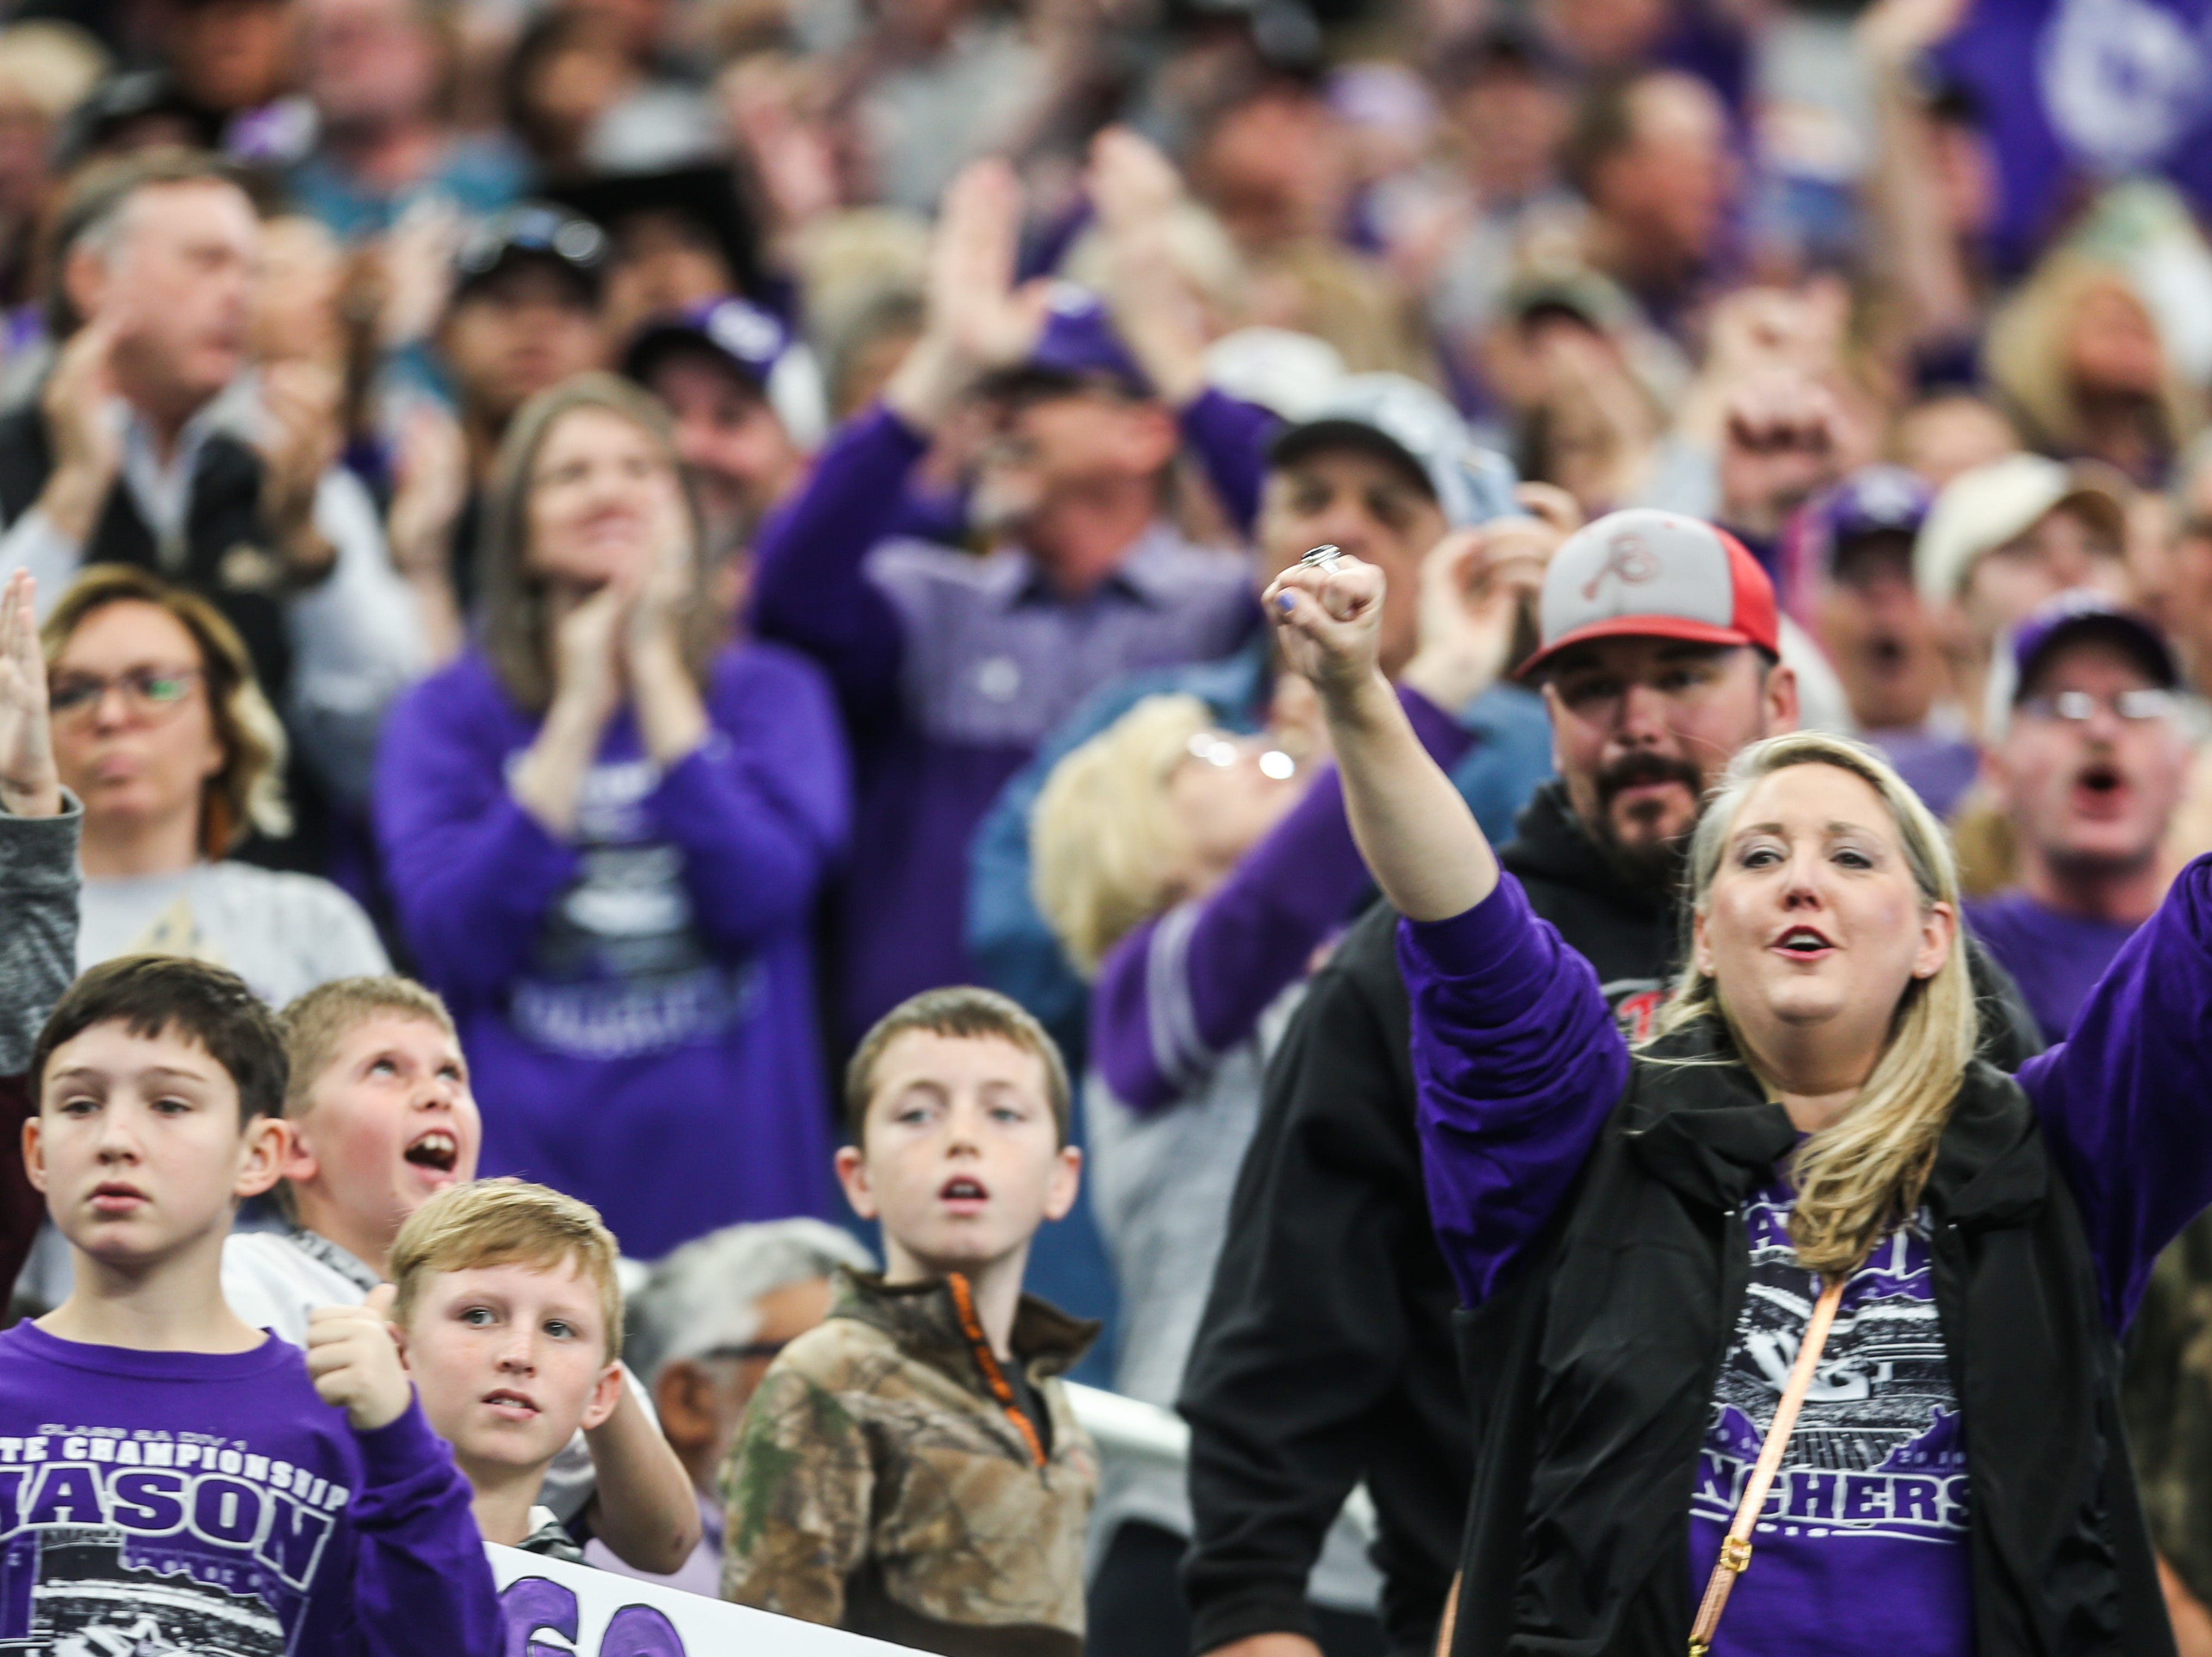 Mason fans cheer at a touchdown during the championship game against New Deal Thursday, Dec. 20, at the AT&T Stadium.